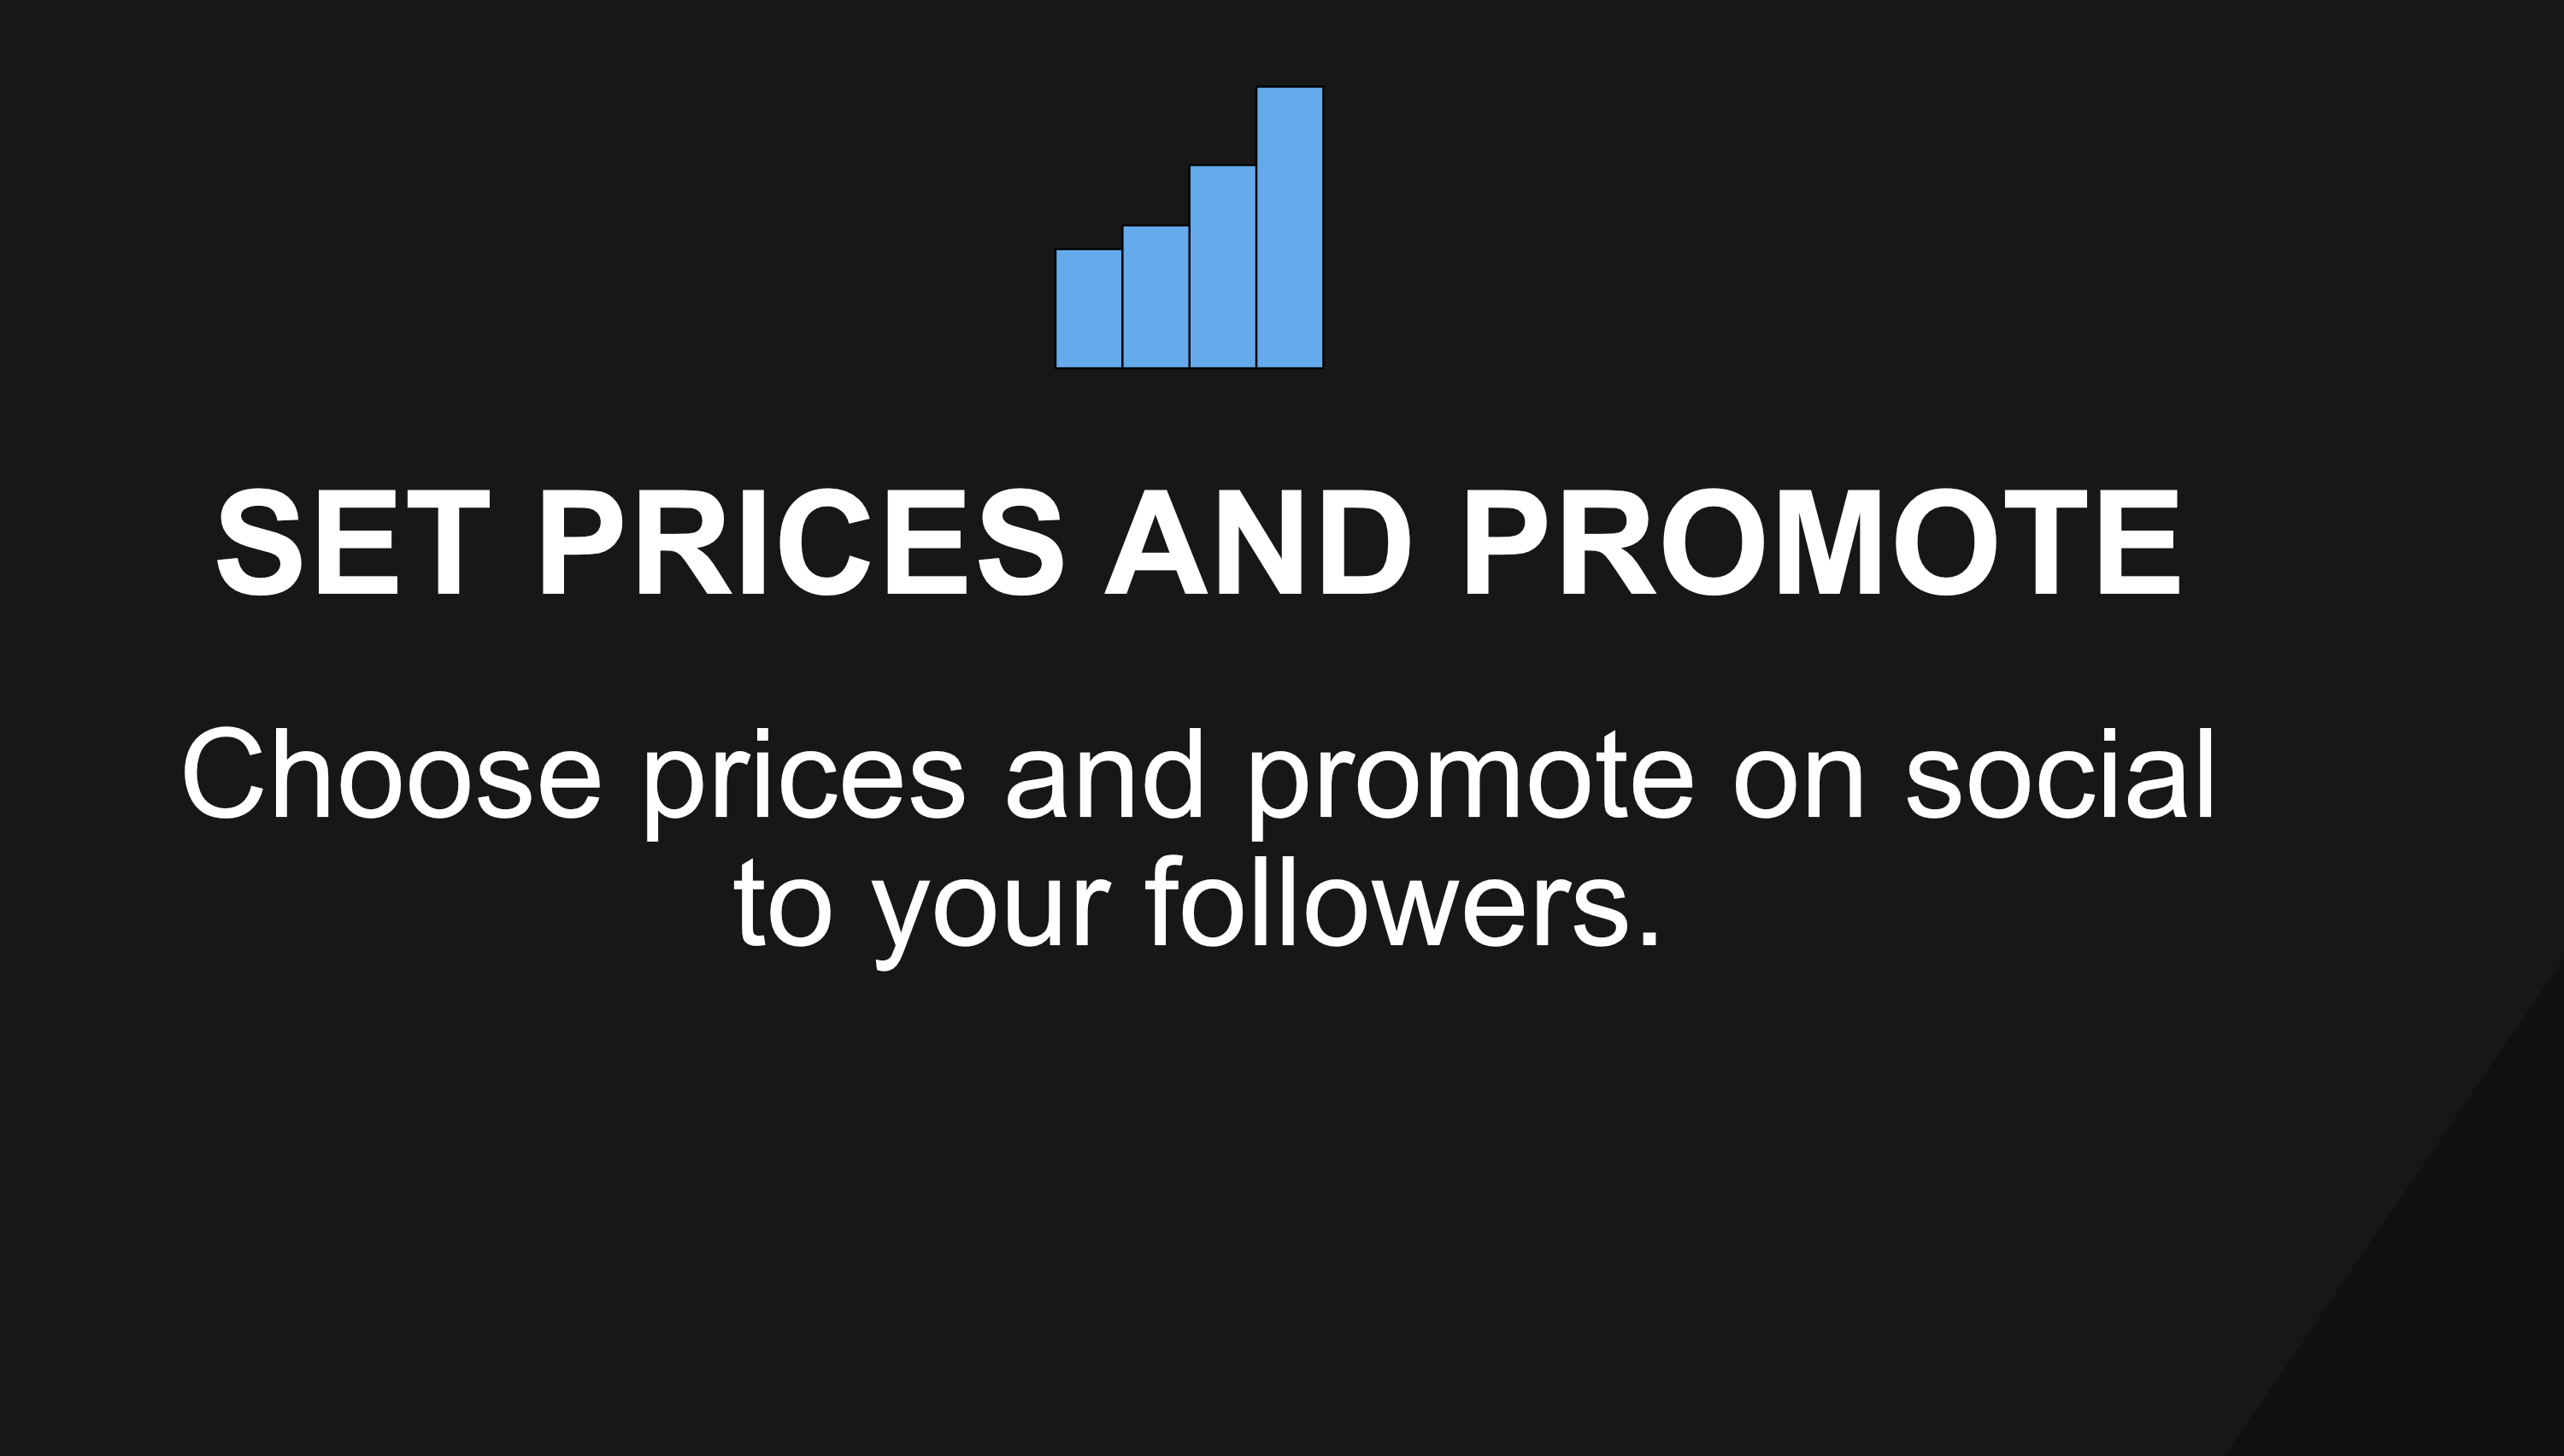 SET PRICES AND PROMOTE